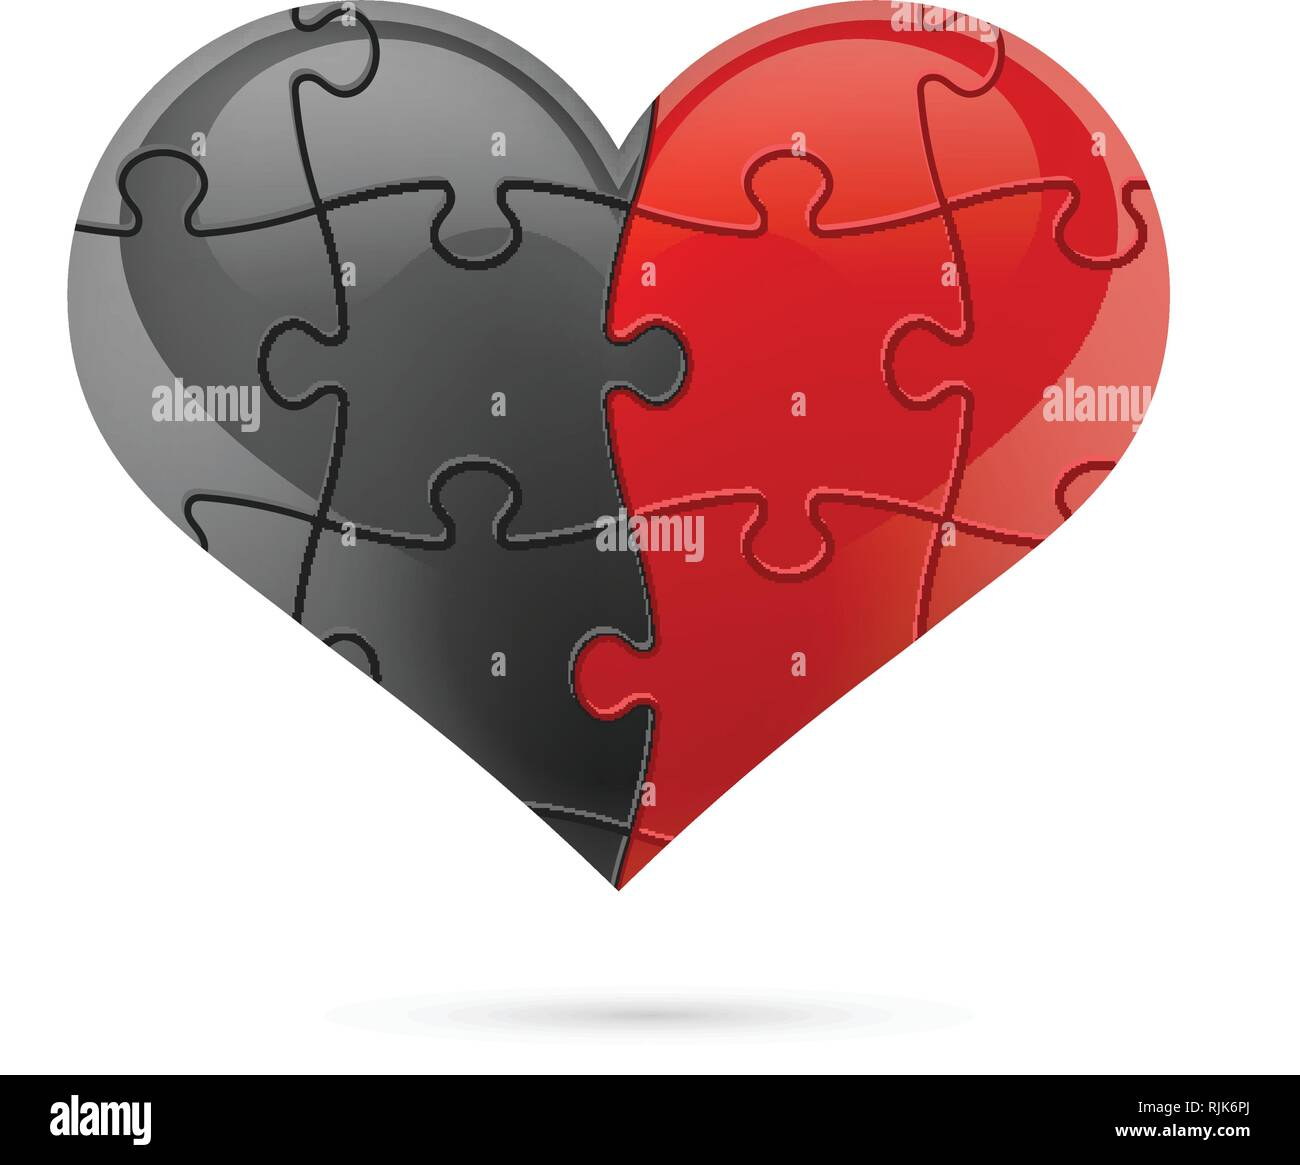 Puzzle heart. Vector illustration - Stock Image